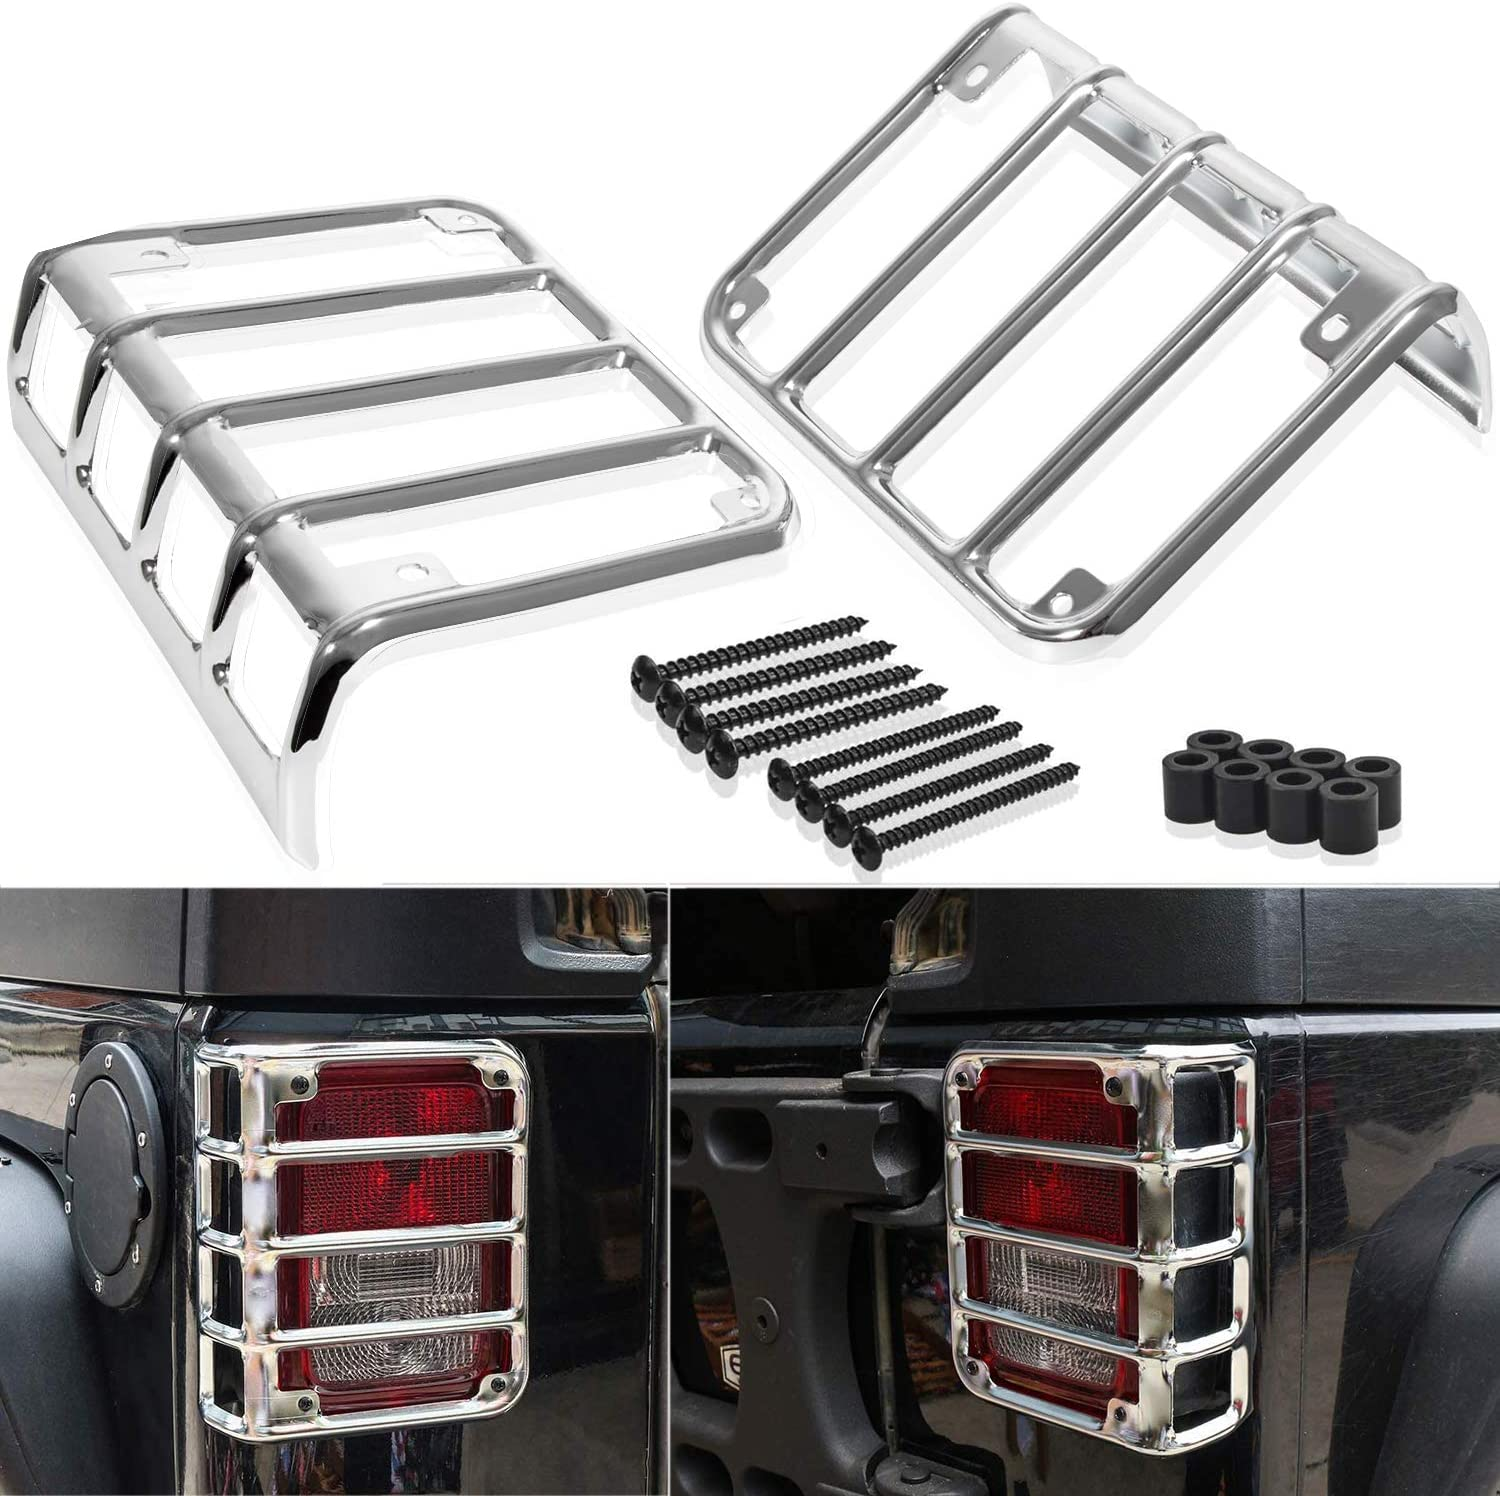 Yoursme Tail Light Guards Rear Taillight Protector Covers Accessories Red Fit for Jeep Wrangler JK 2007-2018